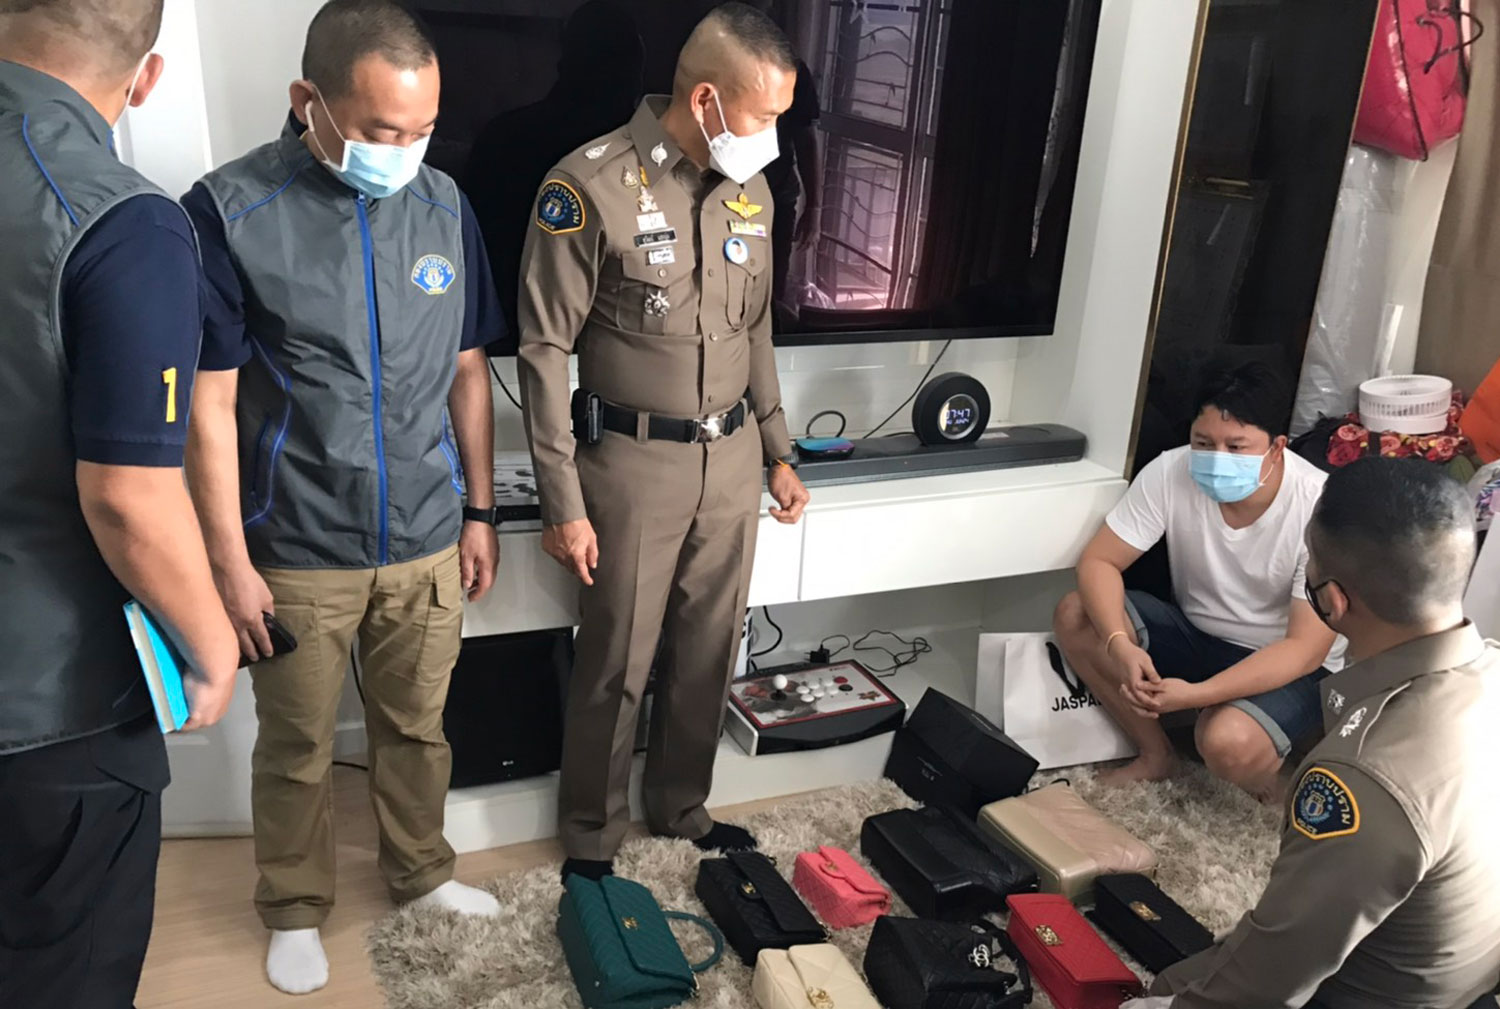 Two held over B200m mobile prepaid card thefts